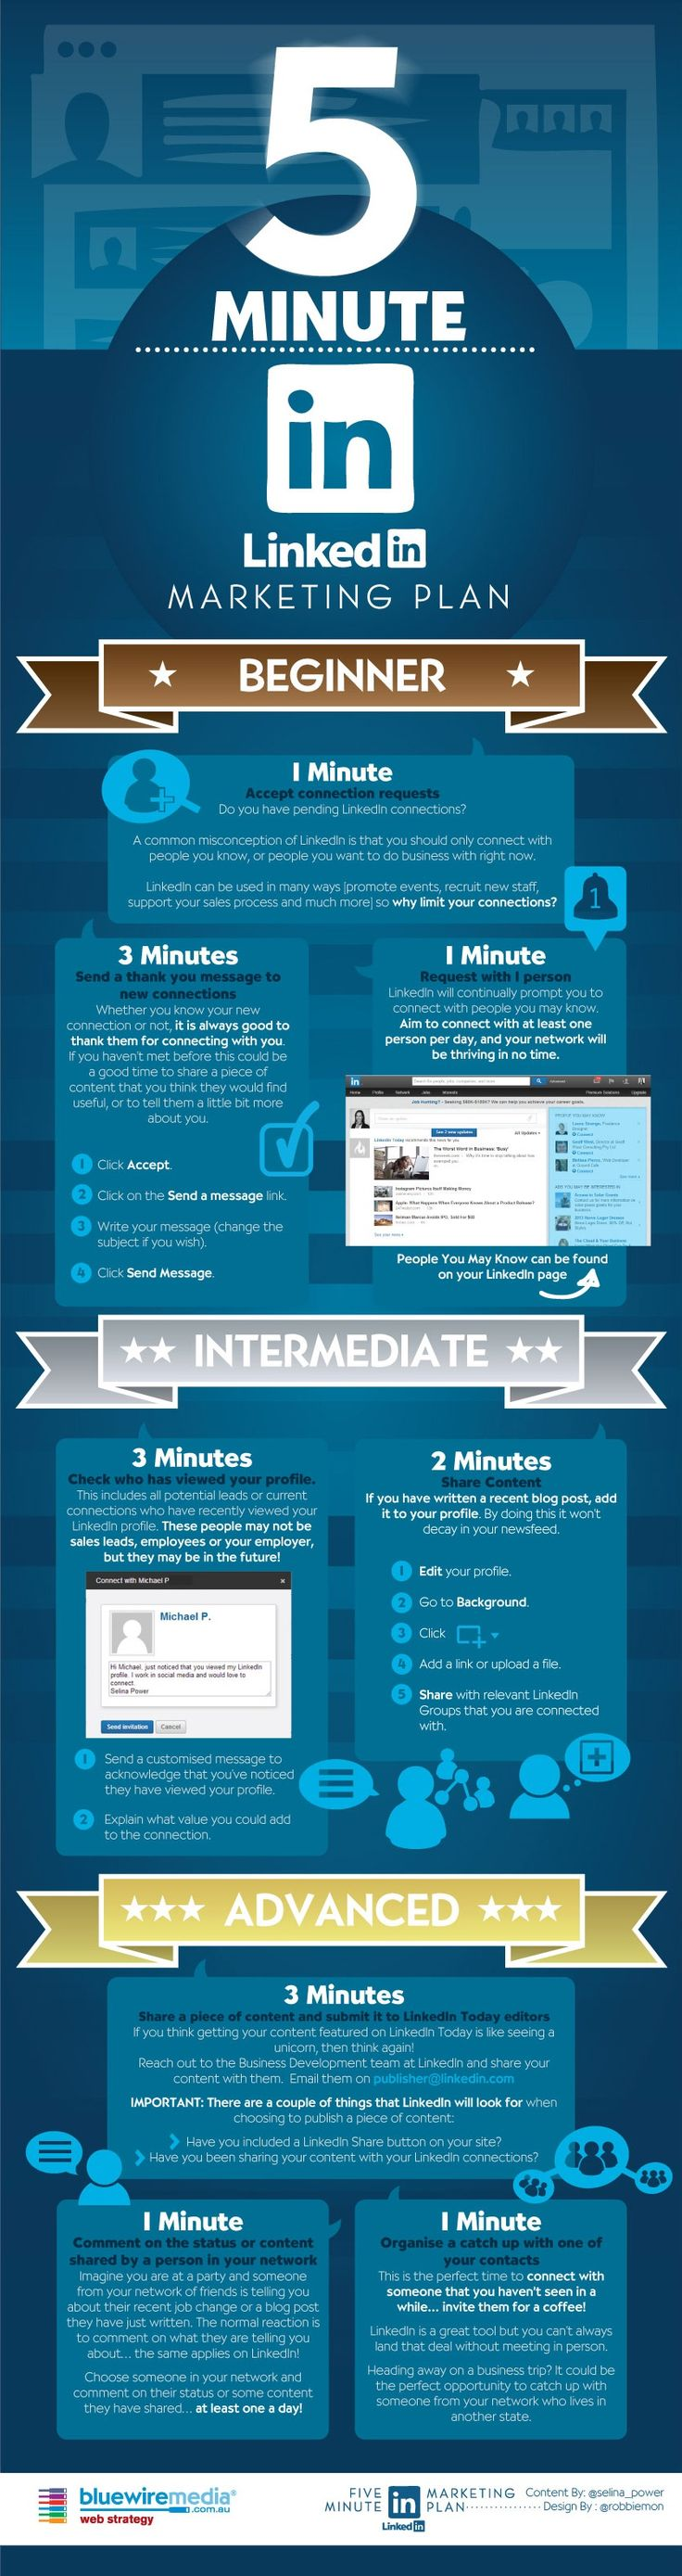 5 Minute #Linkedin Mangement Plan for Users of All Levels #Infographic | via #BornToBeSocial - Pinterest Marketing